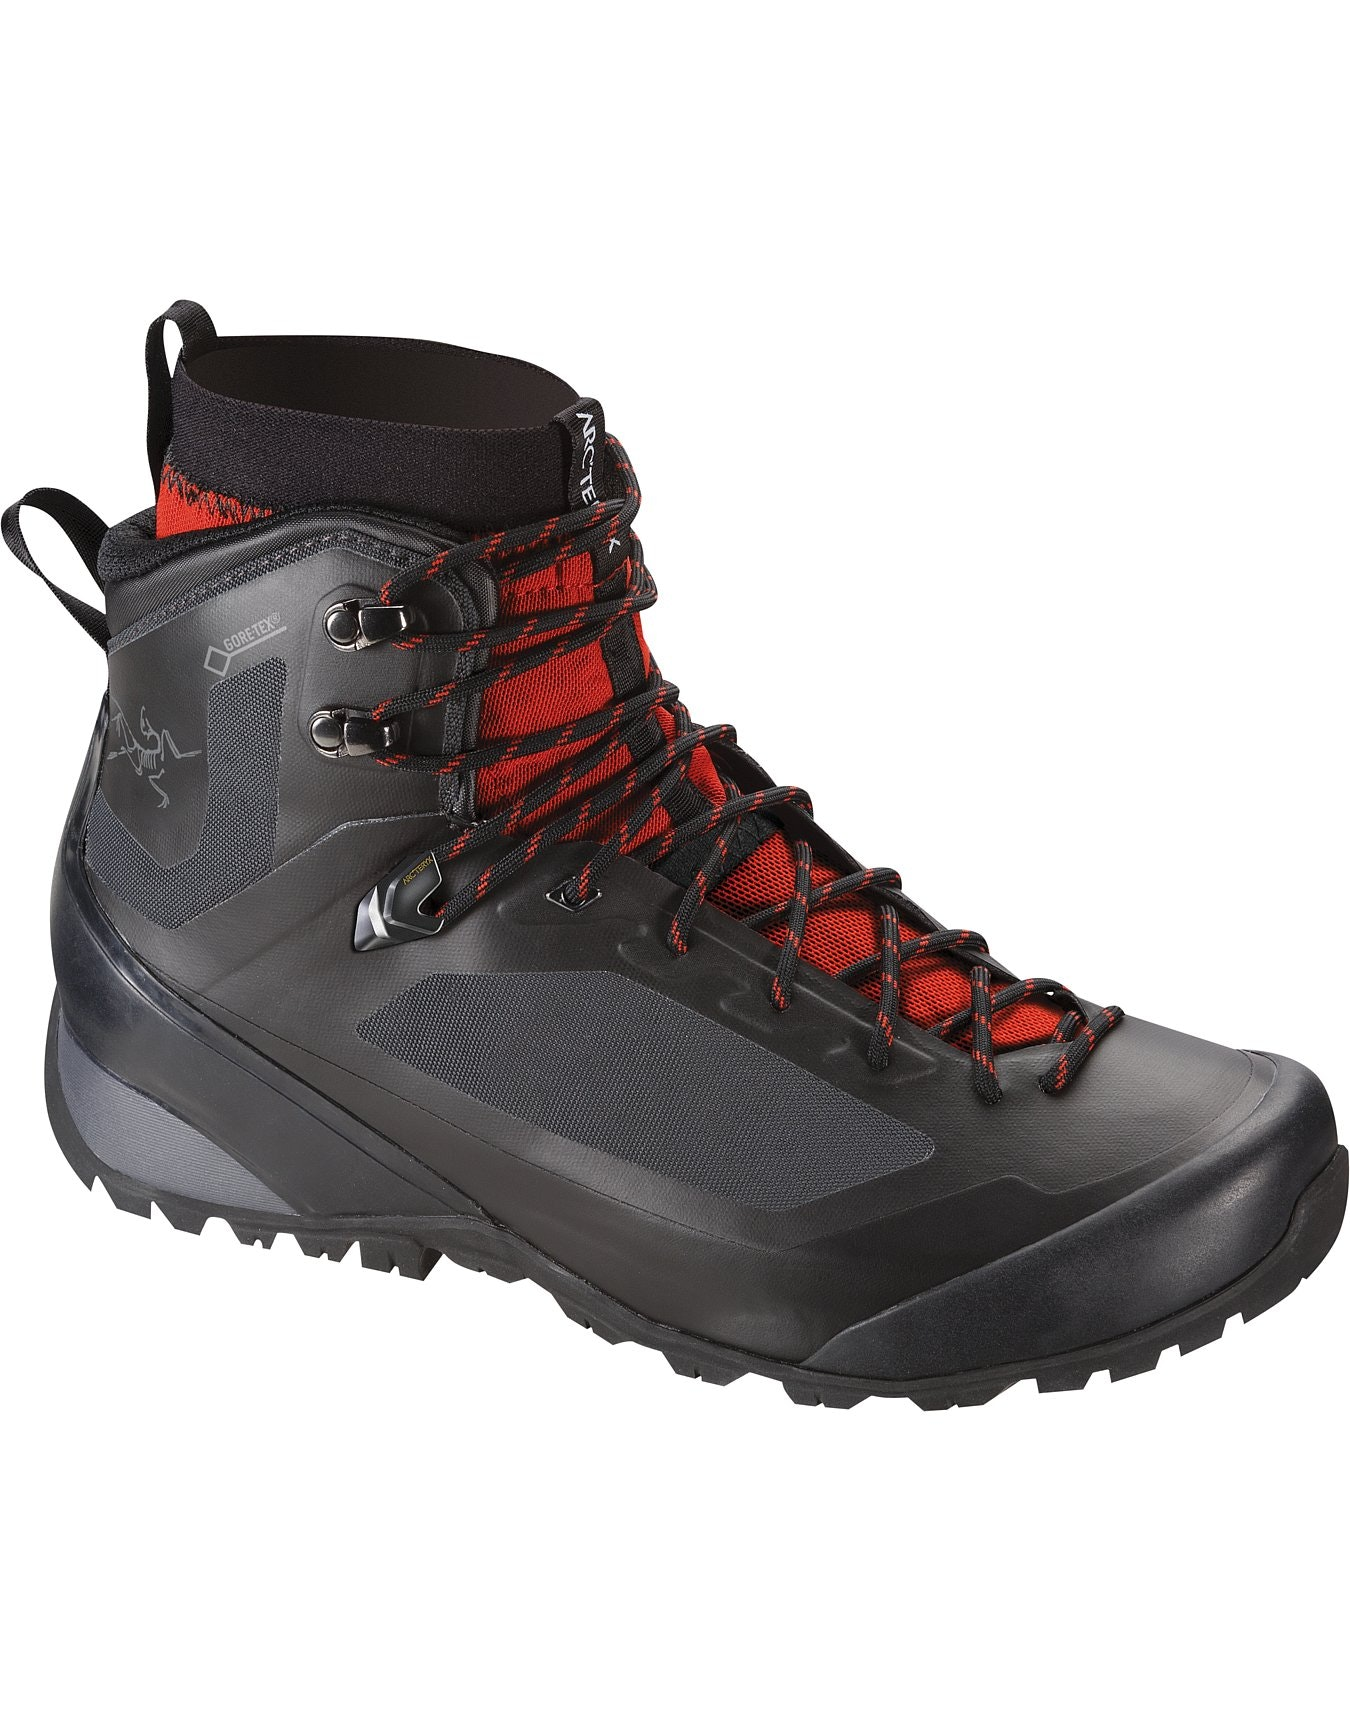 factory authentic aliexpress good service Bora2 Mid GTX Hiking Boot Homme